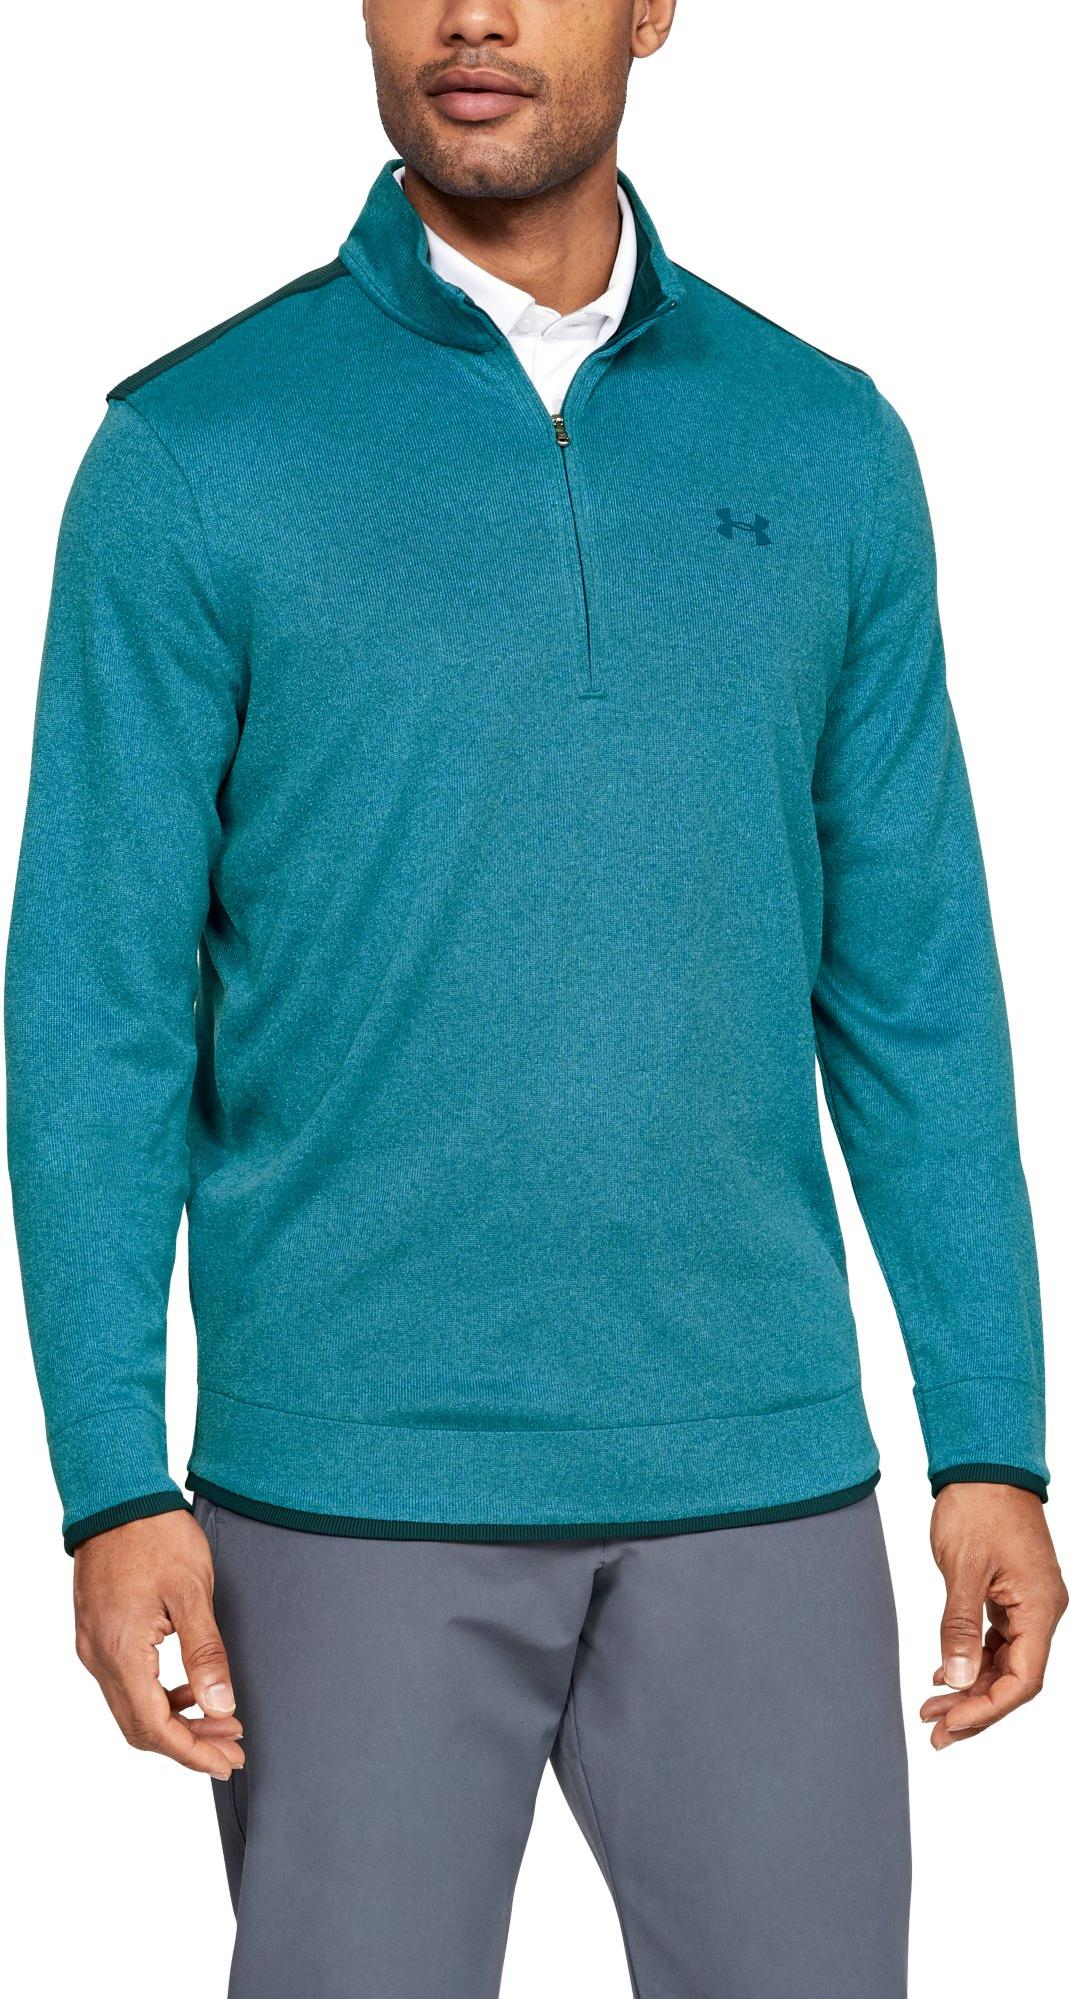 Trenirka Under Armour SweaterFleece 1/2 Zip